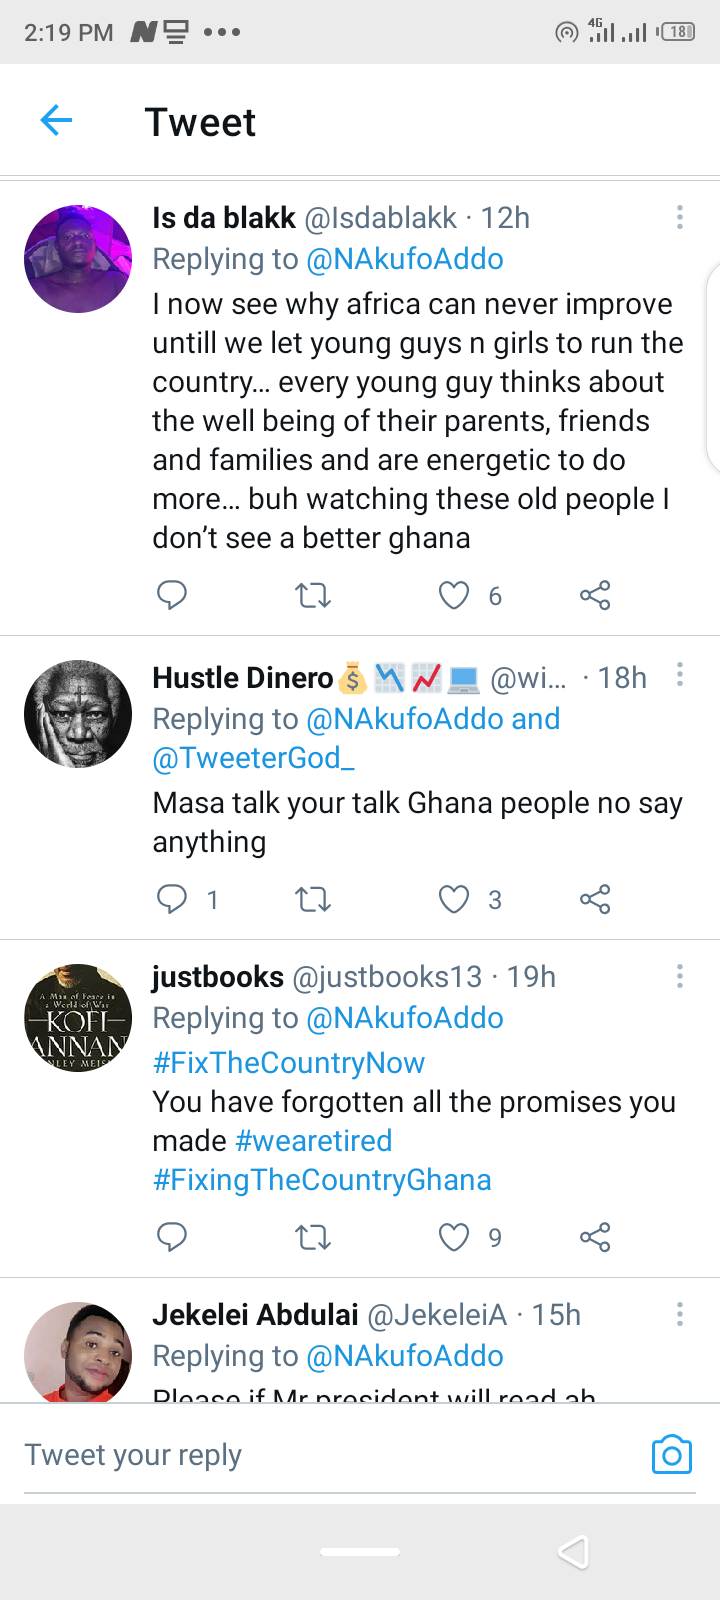 You have forgotten all the promises you made – Ghanaian react to Akufo-Addo's post. 60